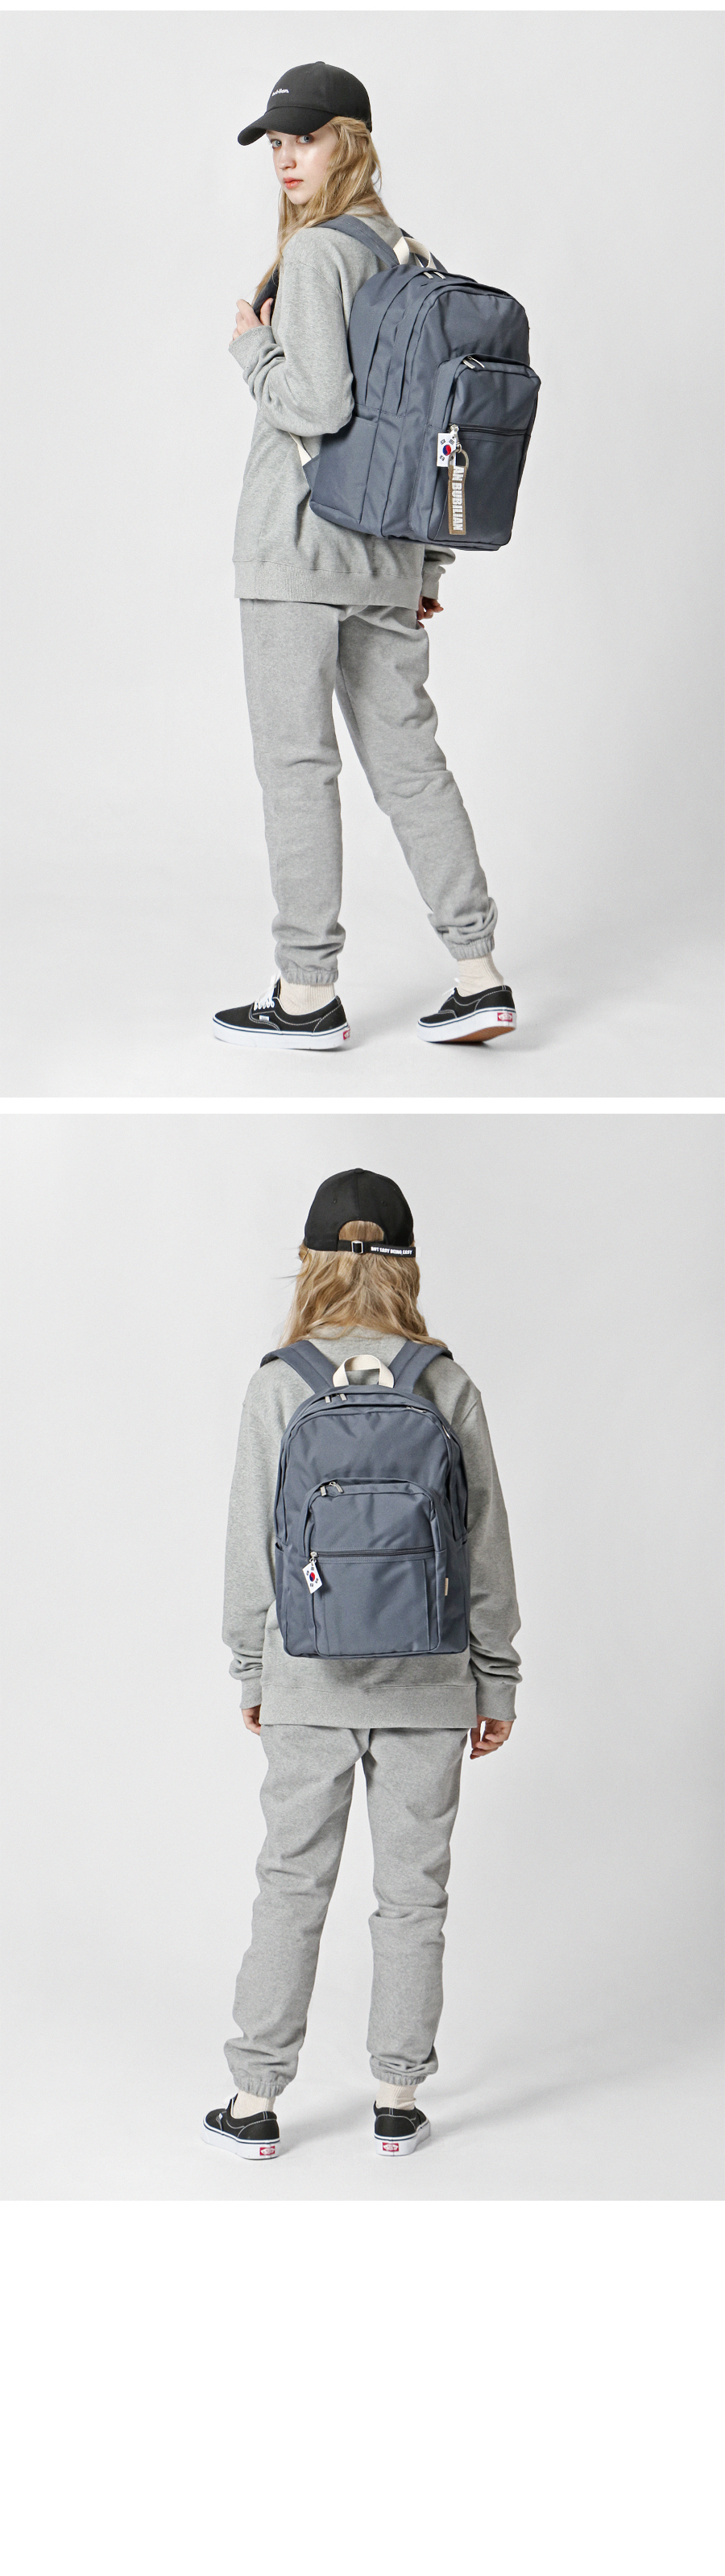 [키홀더 포함] bubilian 815 backpack_DARK GRAY